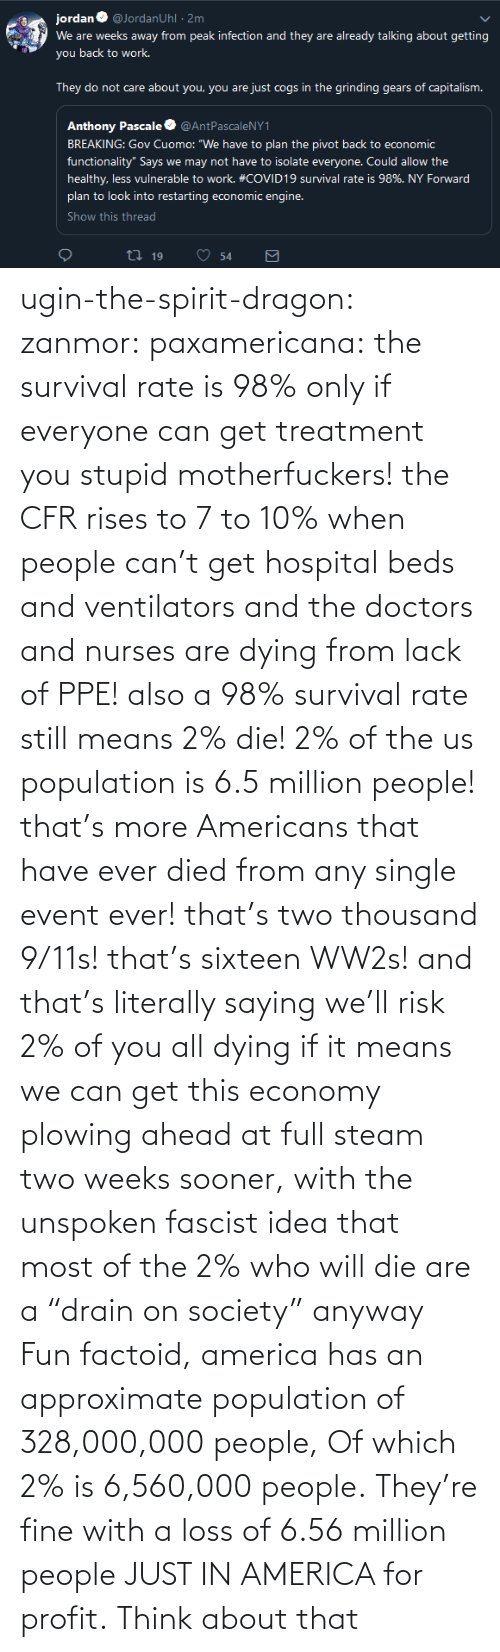 "Ahead: ugin-the-spirit-dragon: zanmor:   paxamericana:  the survival rate is 98% only if everyone can get treatment you stupid motherfuckers! the CFR rises to 7 to 10% when people can't get hospital beds and ventilators and the doctors and nurses are dying from lack of PPE!  also a 98% survival rate still means 2% die! 2% of the us population is 6.5 million people! that's more Americans that have ever died from any single event ever! that's two thousand 9/11s! that's sixteen WW2s!  and that's literally saying we'll risk 2% of you all dying if it means we can get this economy plowing ahead at full steam two weeks sooner, with the unspoken fascist idea that most of the 2% who will die are a ""drain on society"" anyway    Fun factoid, america has an approximate population of 328,000,000 people,  Of which 2% is 6,560,000 people. They're fine with a loss of 6.56 million people JUST IN AMERICA for profit. Think about that"